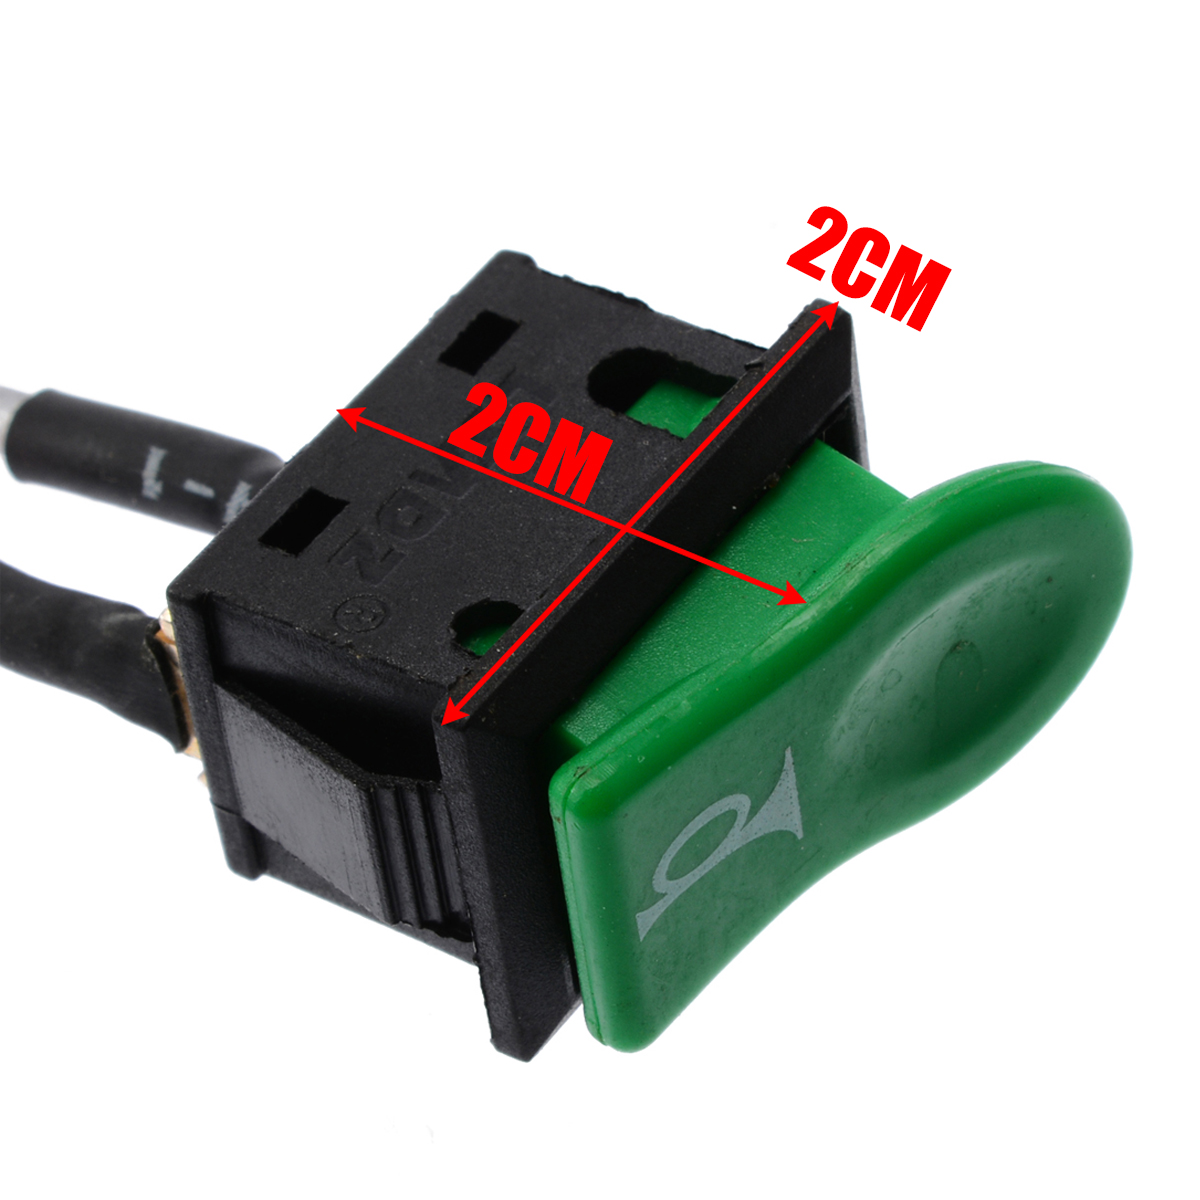 Mayitr ABS Plastic Green Momentary Push Button Car Horn Switch Button Universal for Car Motorbike E-bike